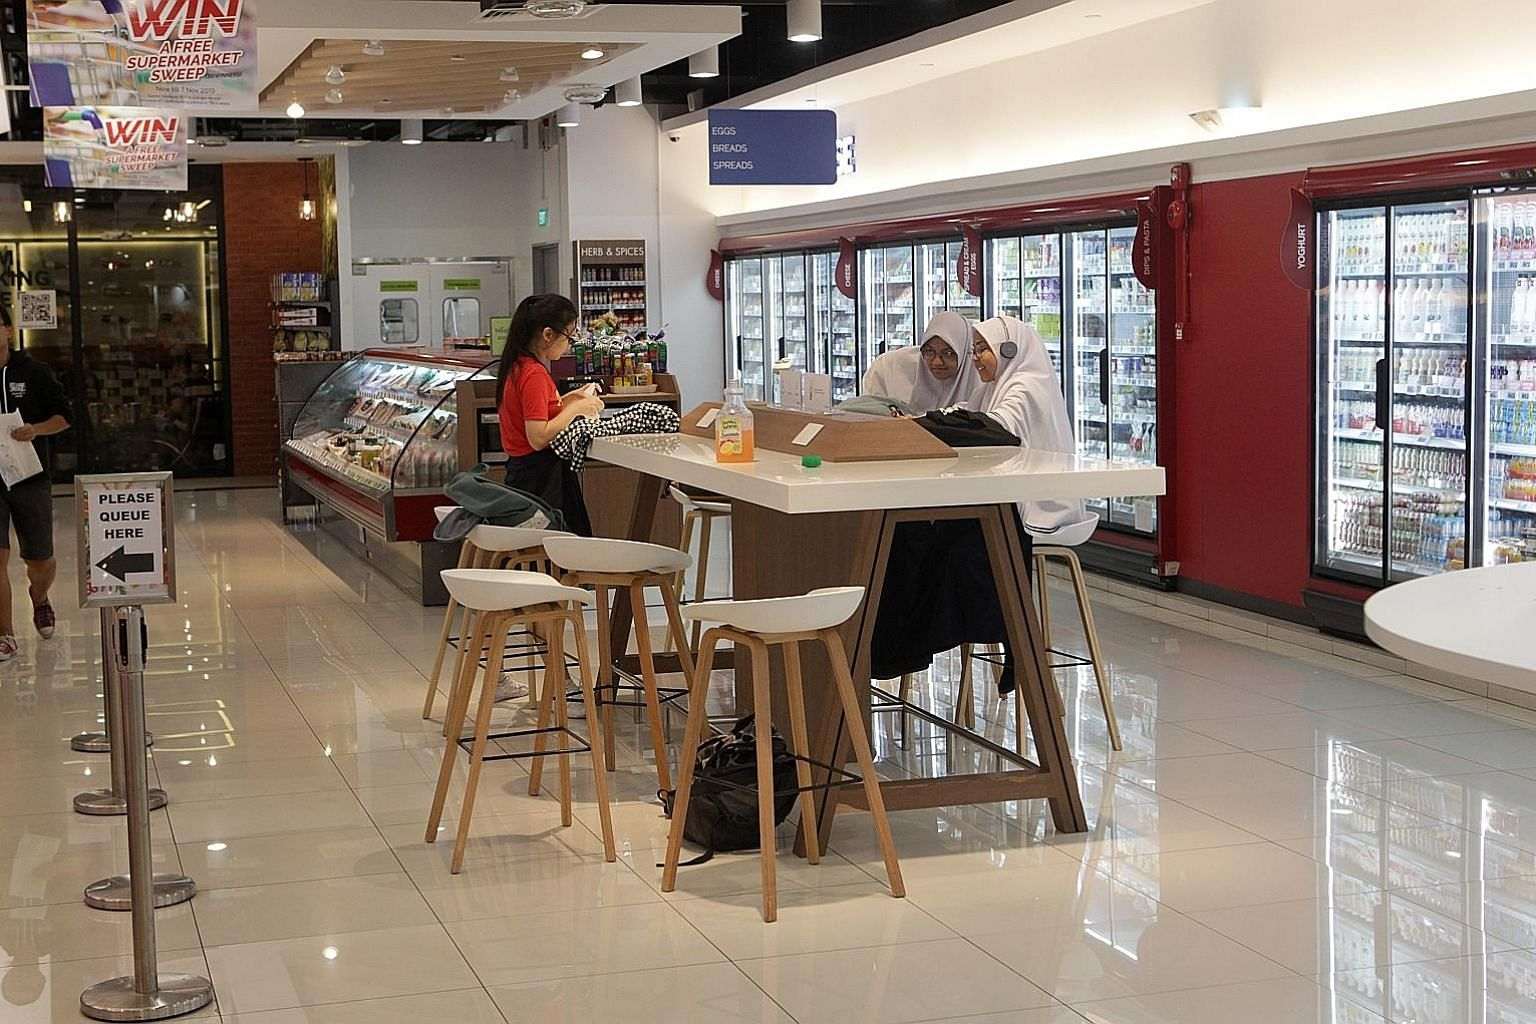 Students gathering at the Habitat by Honestbee supermarket in Pasir Panjang to study last Monday afternoon. A schoolgirl at her laptop in the Koufu food court at Sengkang General Hospital last Thursday. One of the unconventional study hot spots that